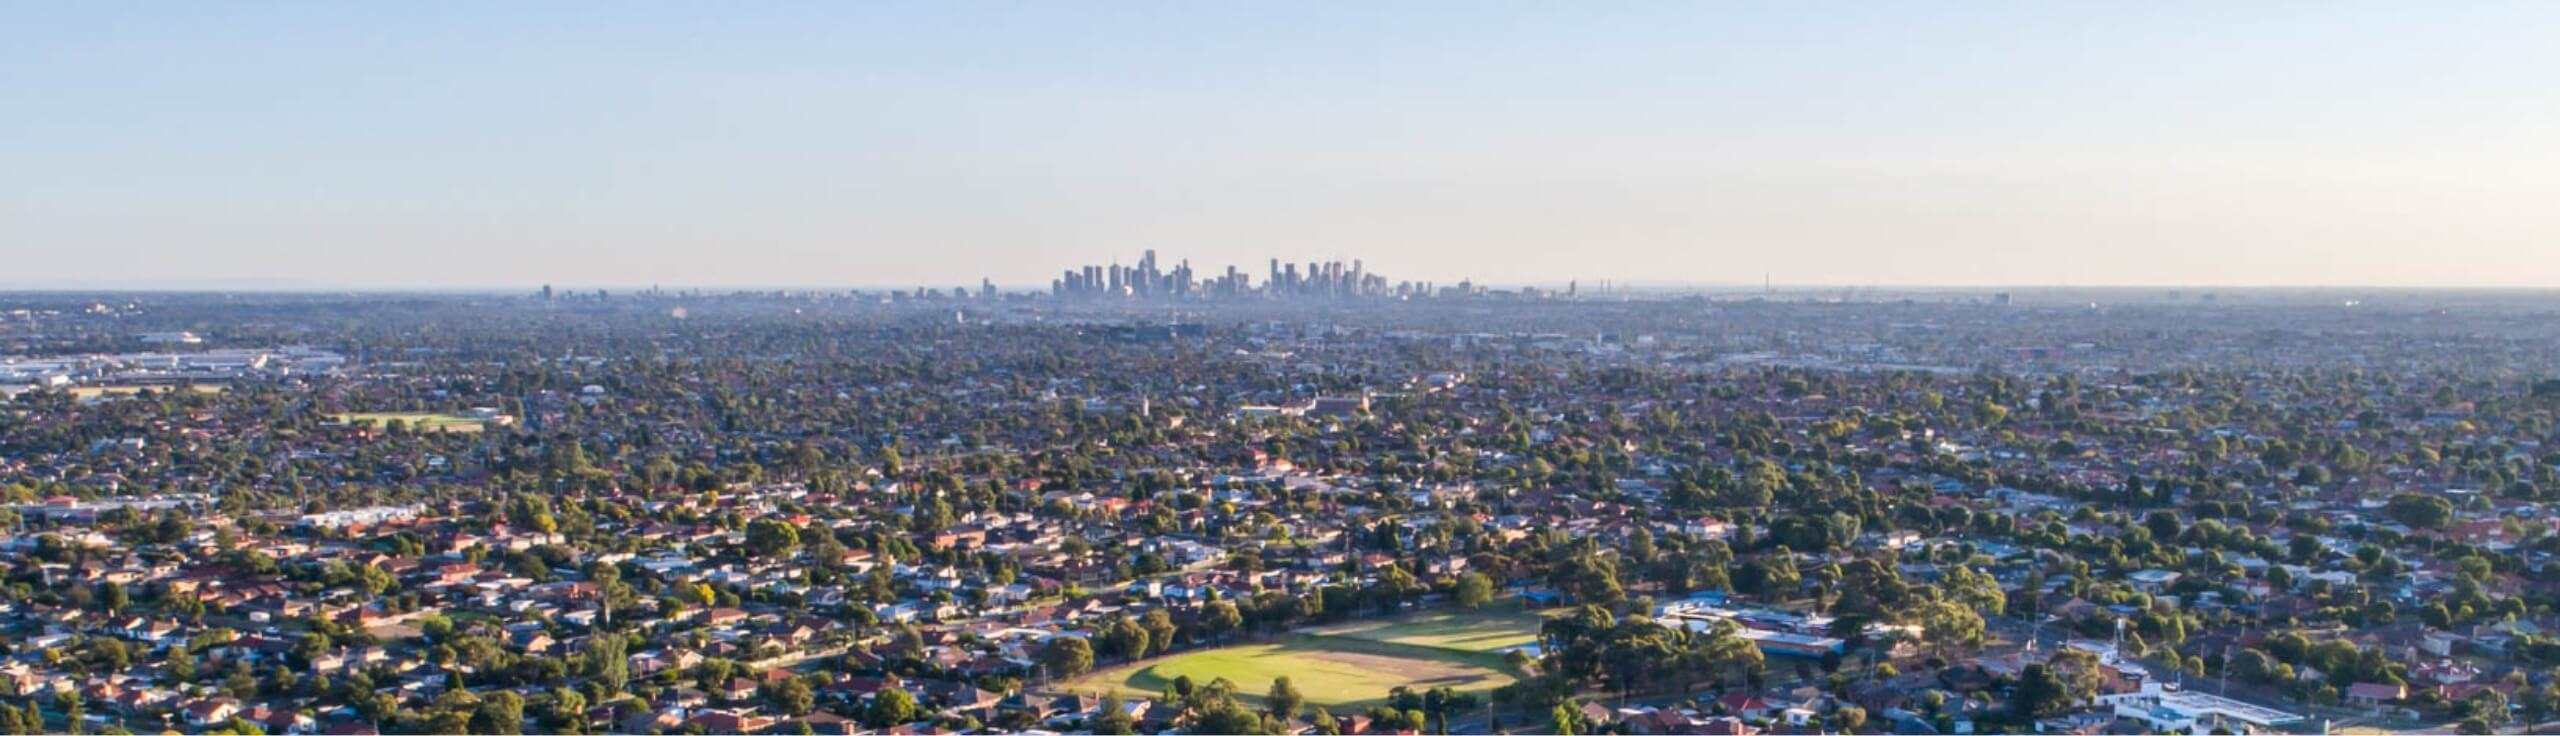 Rooftop image of Melbourne's Northern suburbs